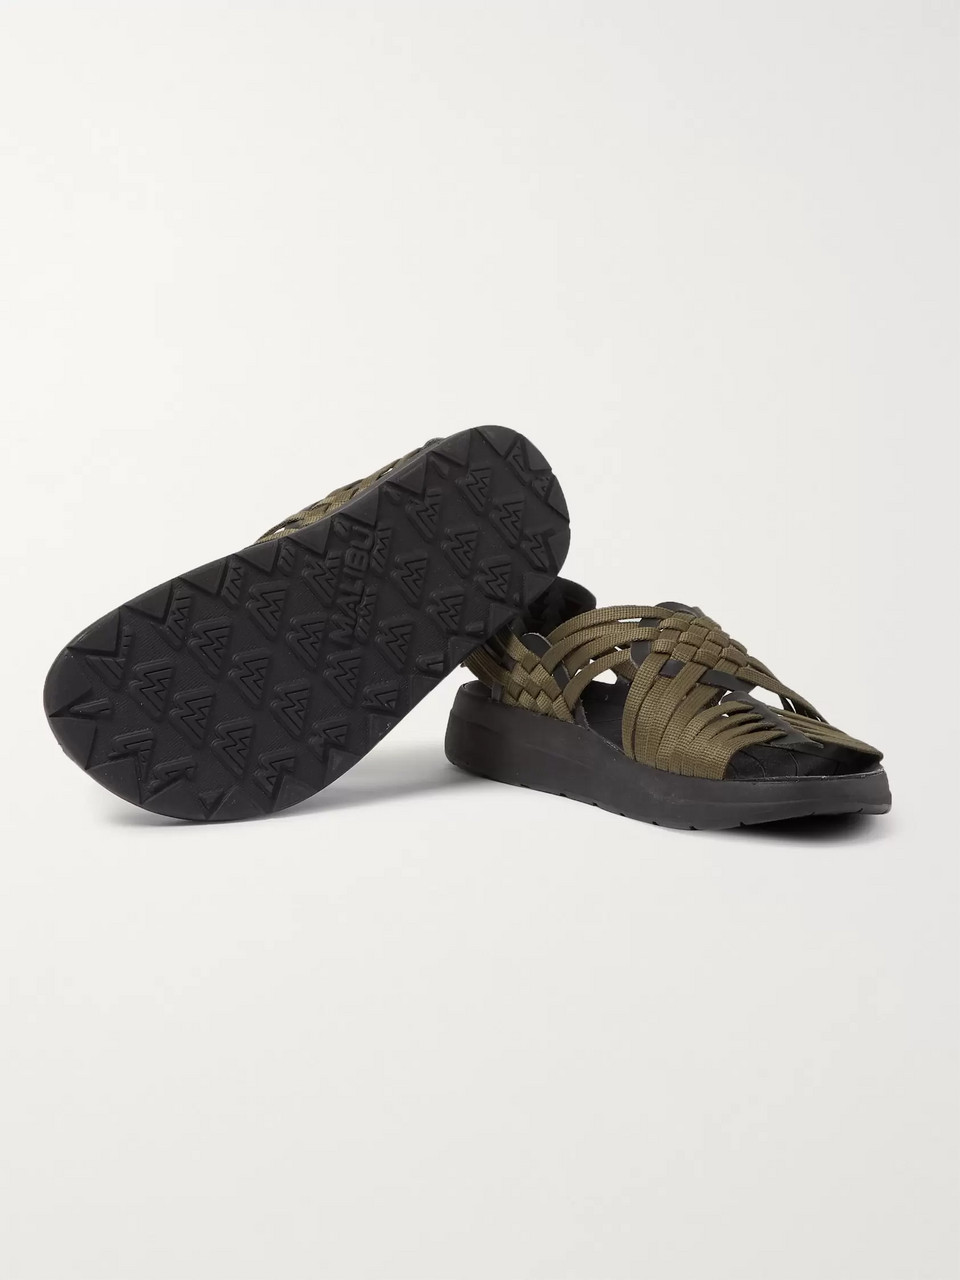 Malibu Canyon Woven Nylon-Webbing and Faux Leather Sandals